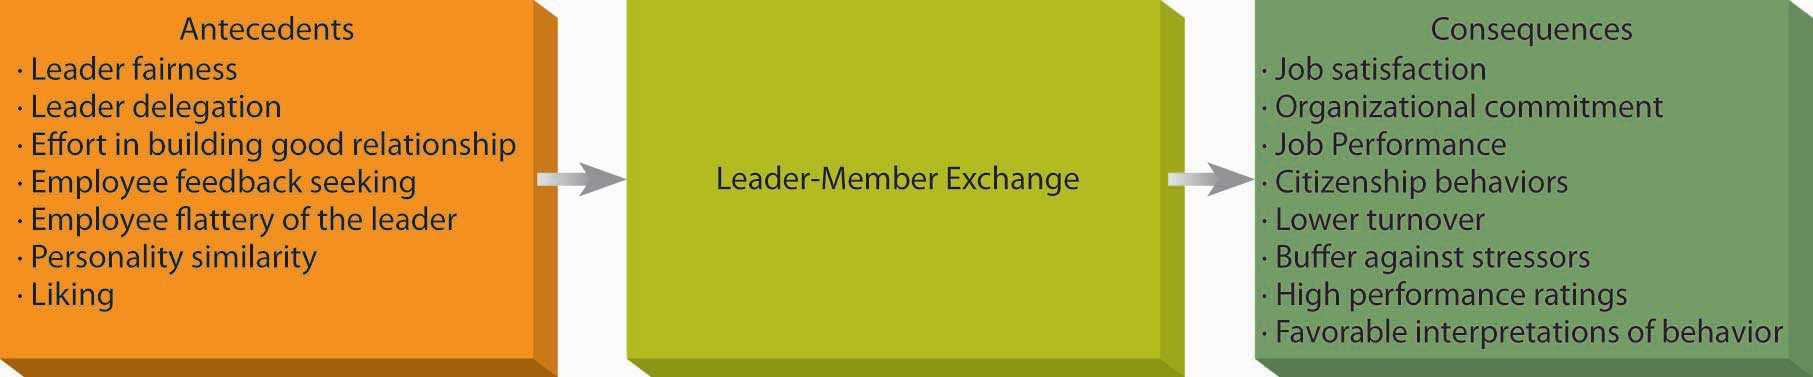 lmx theory questionnaire The leader-member exchange theory first appeared in the 1970s it analyzes the relationship between managers and team members team members typically go through three phases in their relationship with their manager: role-taking, role-making, and routinization.